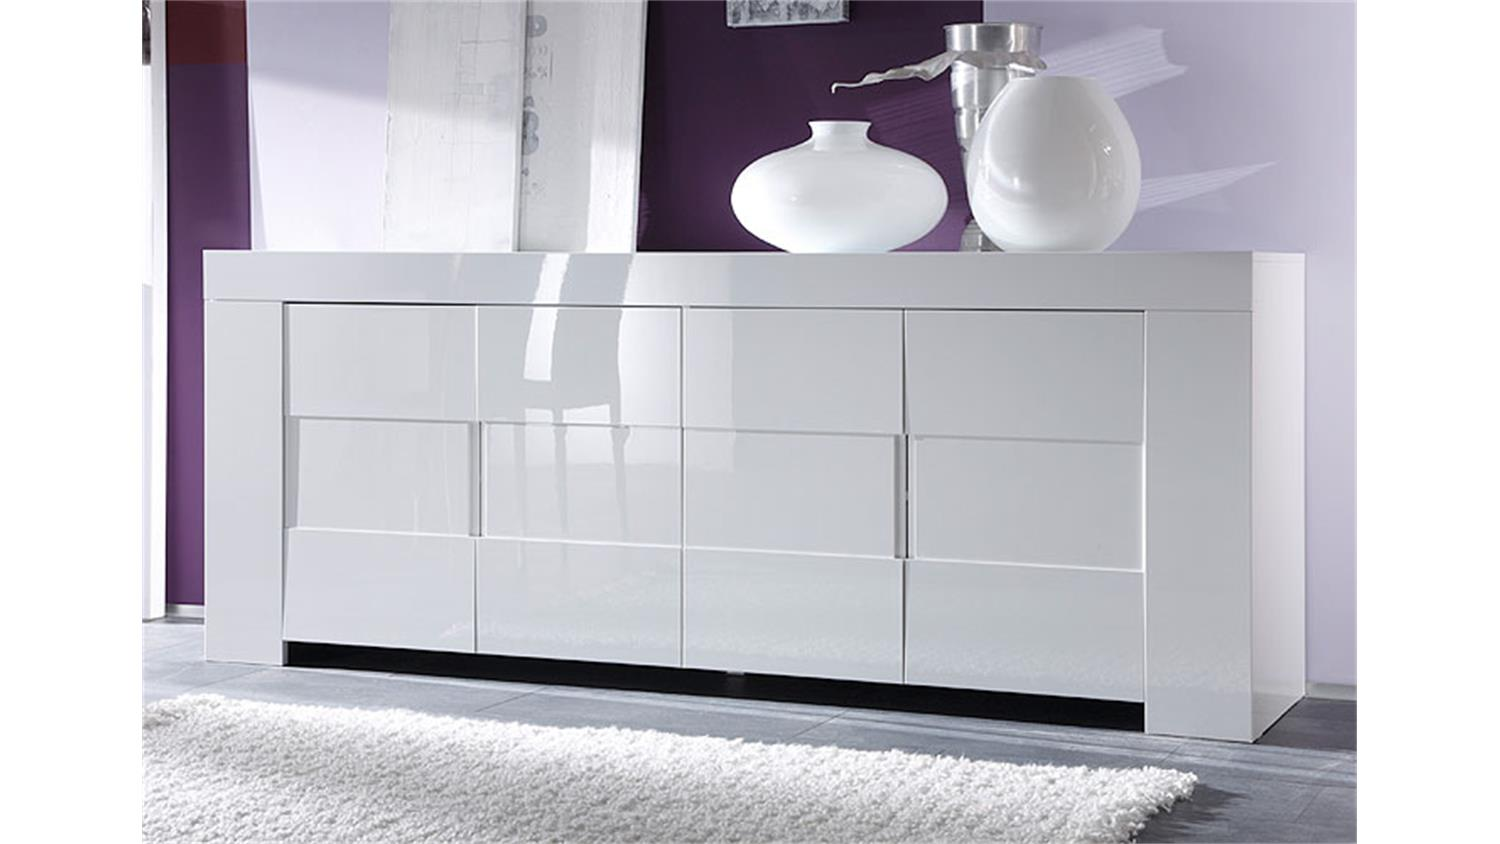 sideboard eos anrichte wei echt hochglanz lackiert 210 cm breit. Black Bedroom Furniture Sets. Home Design Ideas